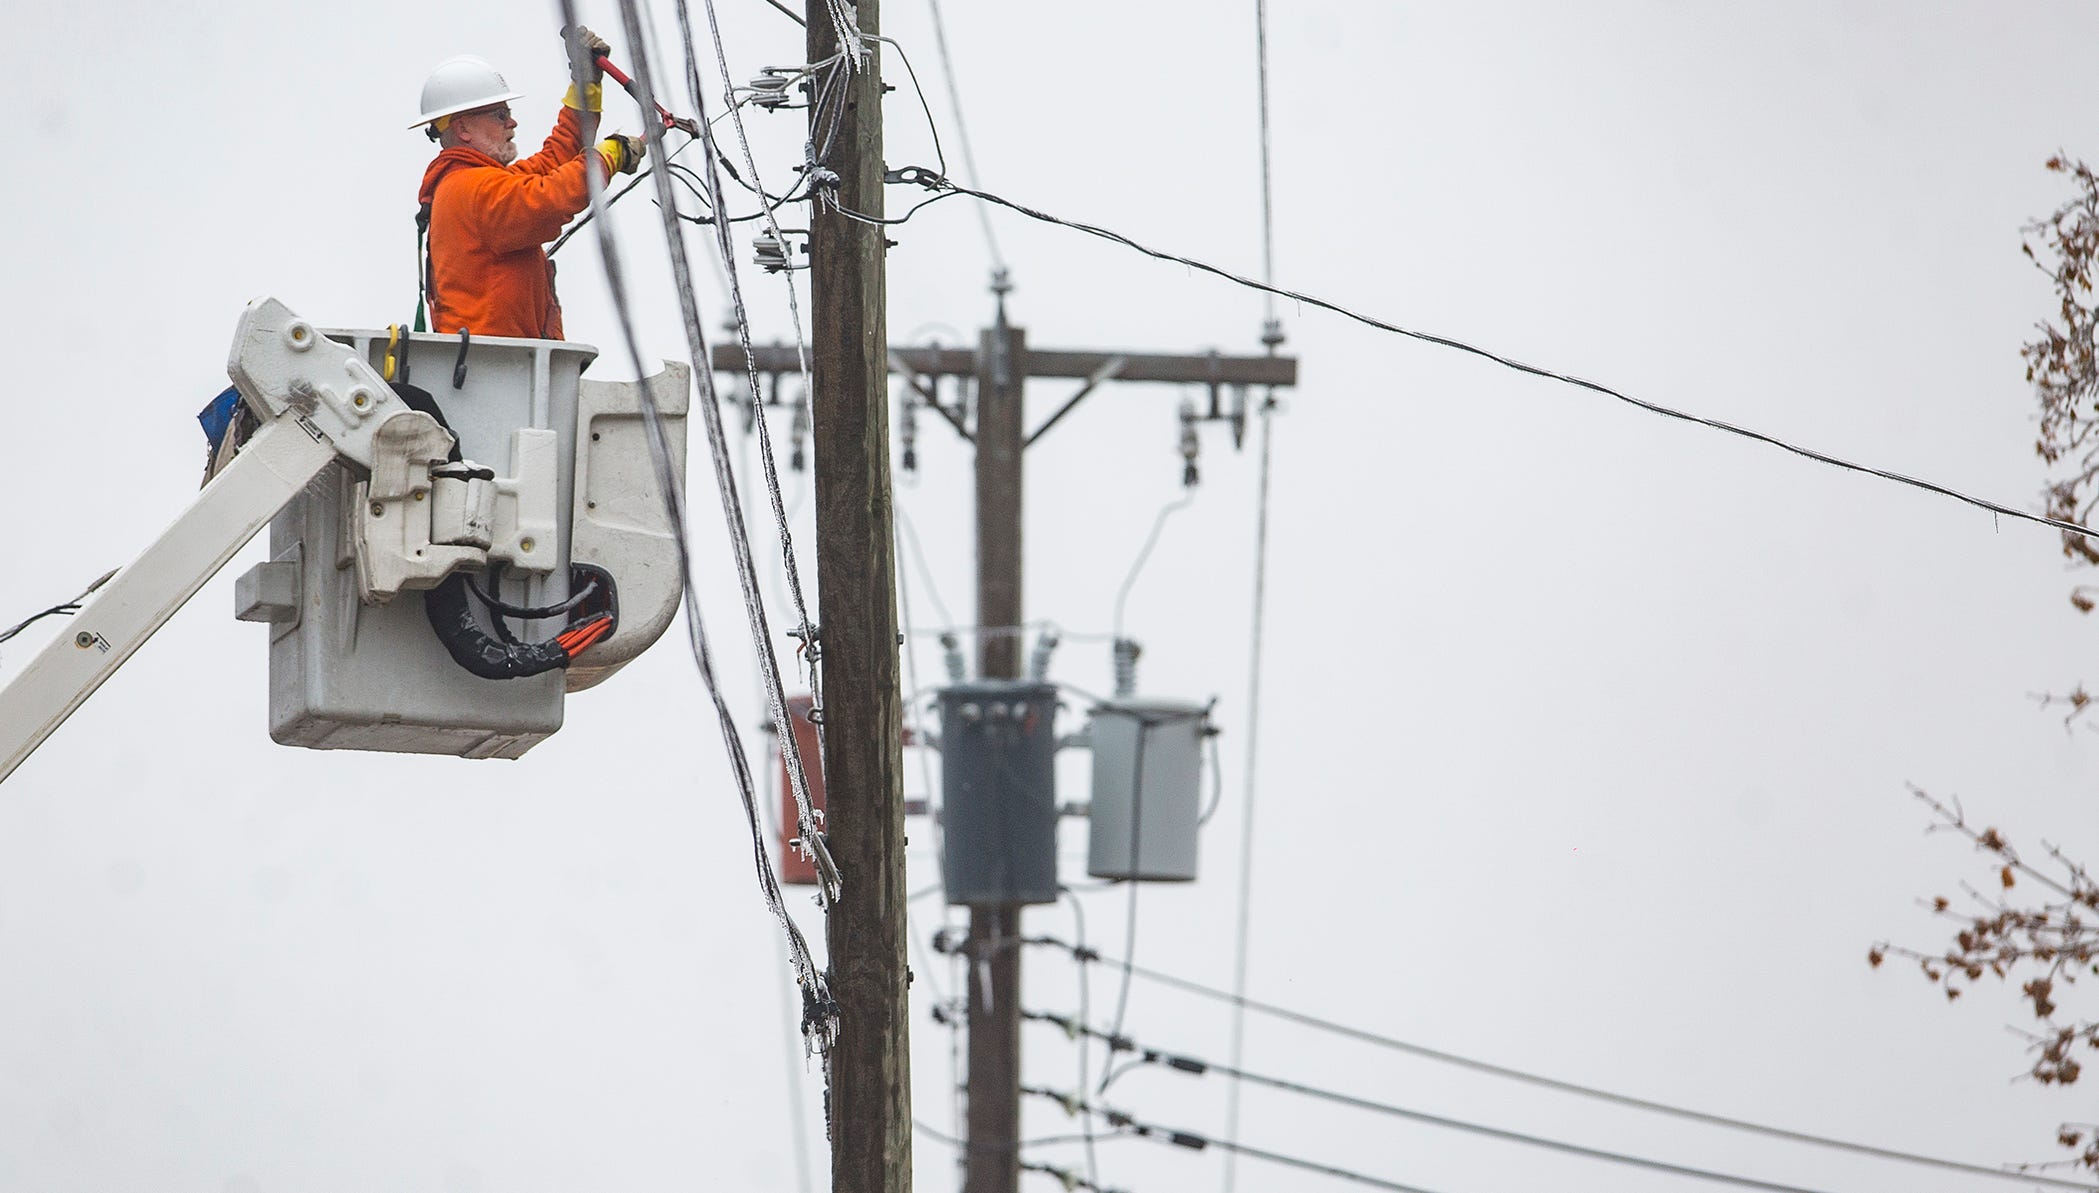 99 percent of power restored in Delaware County, I&M says